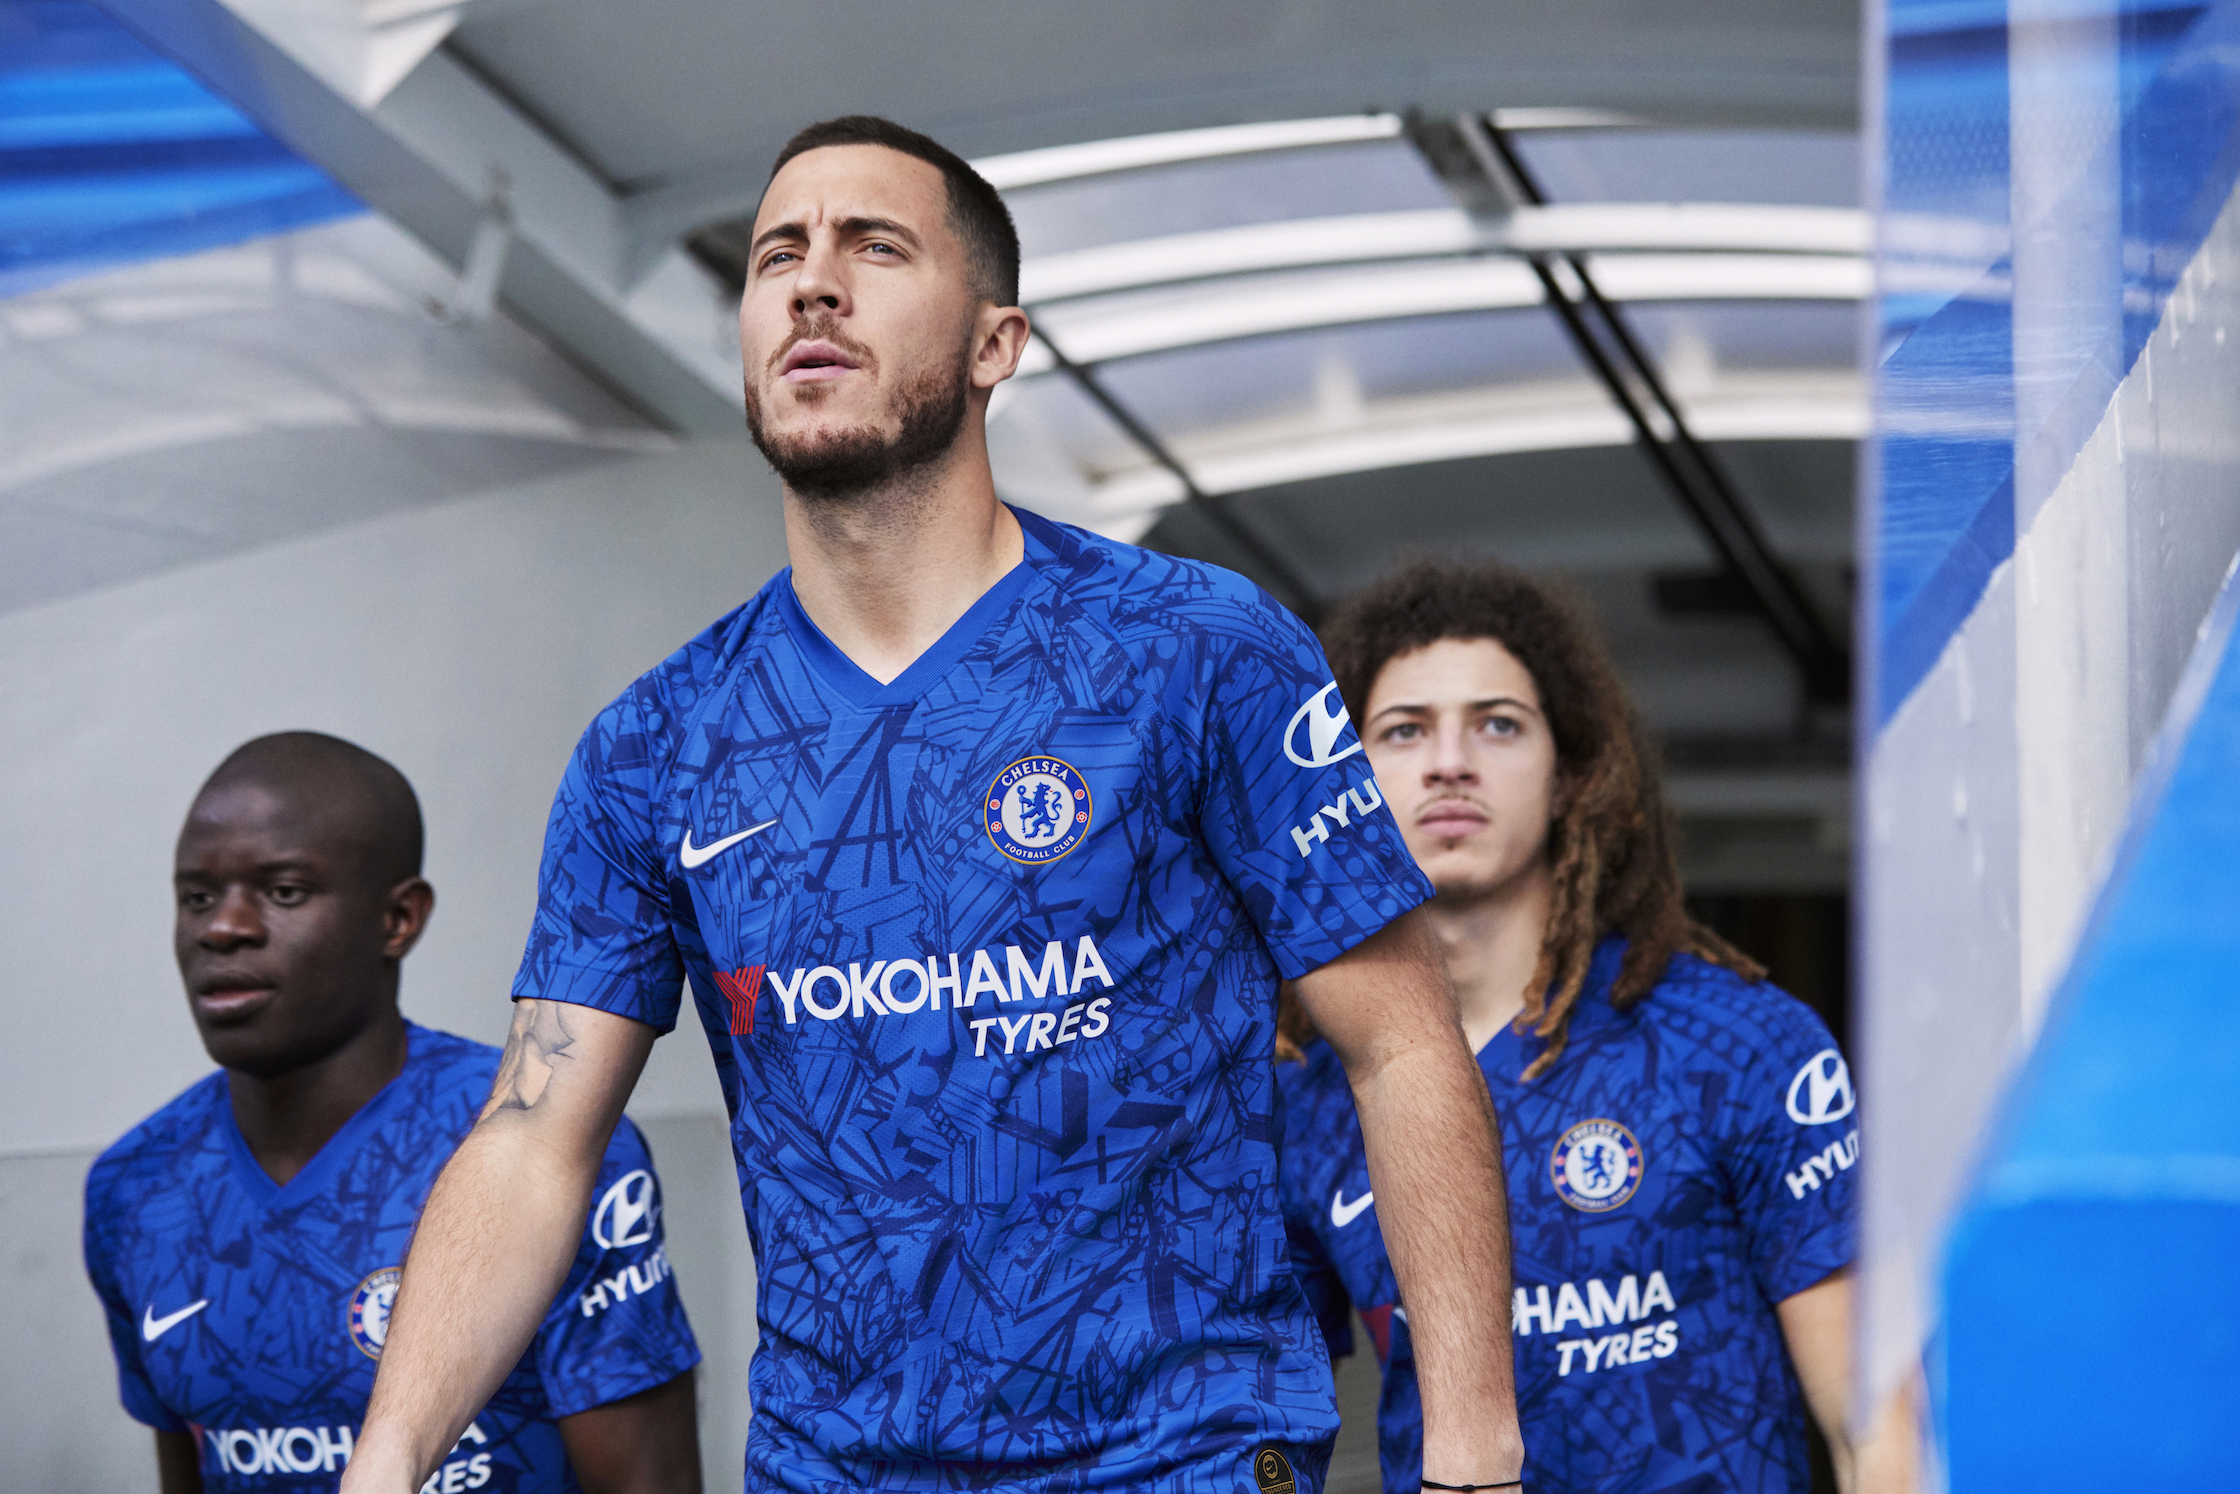 new style e8112 d99b9 Nike and Chelsea Drop a Bold Home Kit for 2019/20 Inspired ...